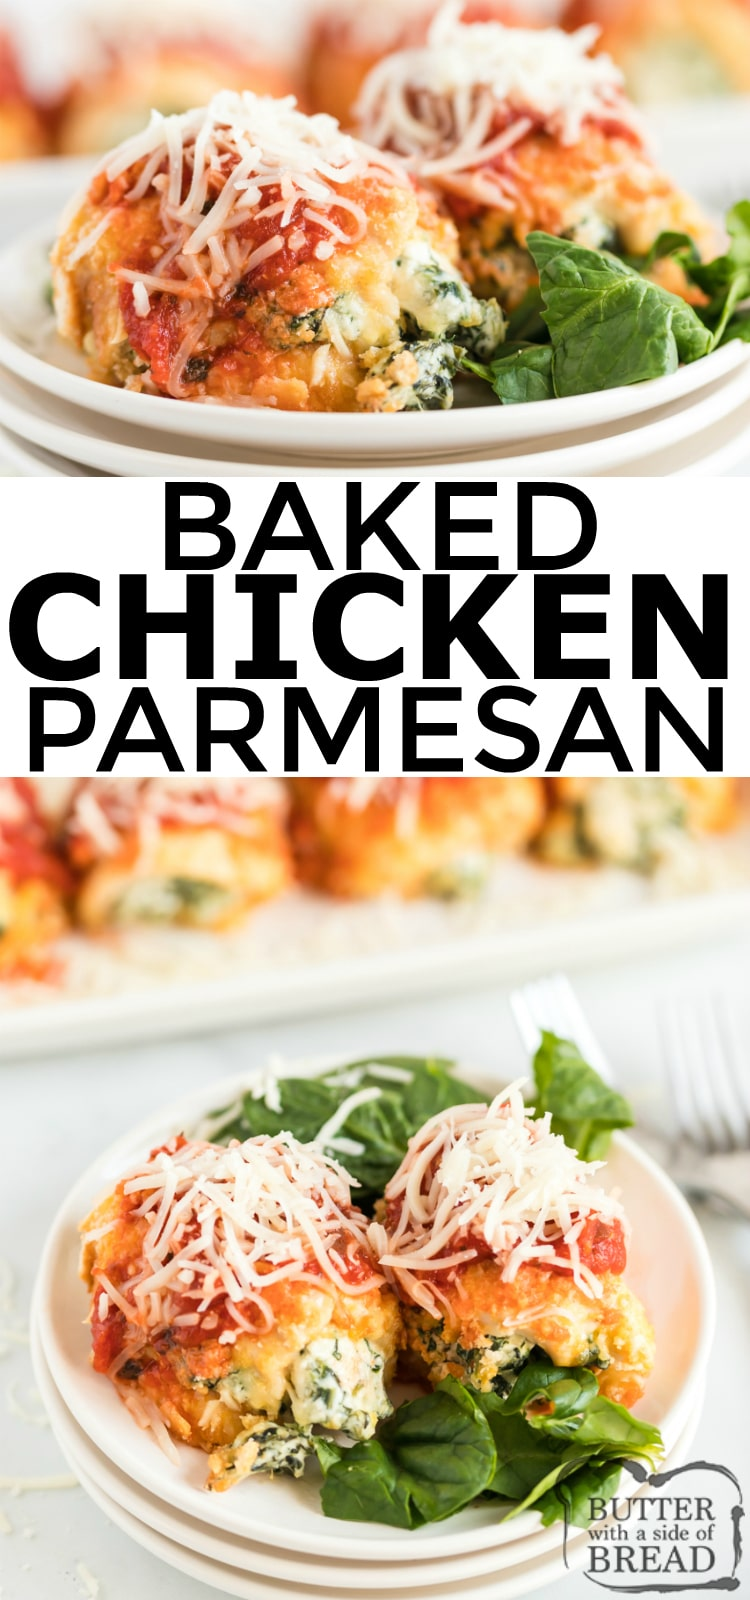 Baked Chicken Parmesan recipe made with tenderized and breaded chicken breasts, baked and smothered in marinara sauce, and topped with melted mozzarella and parmesan cheese.  Your family is going to love this take on a lighter classic Italian easy chicken parmesan.